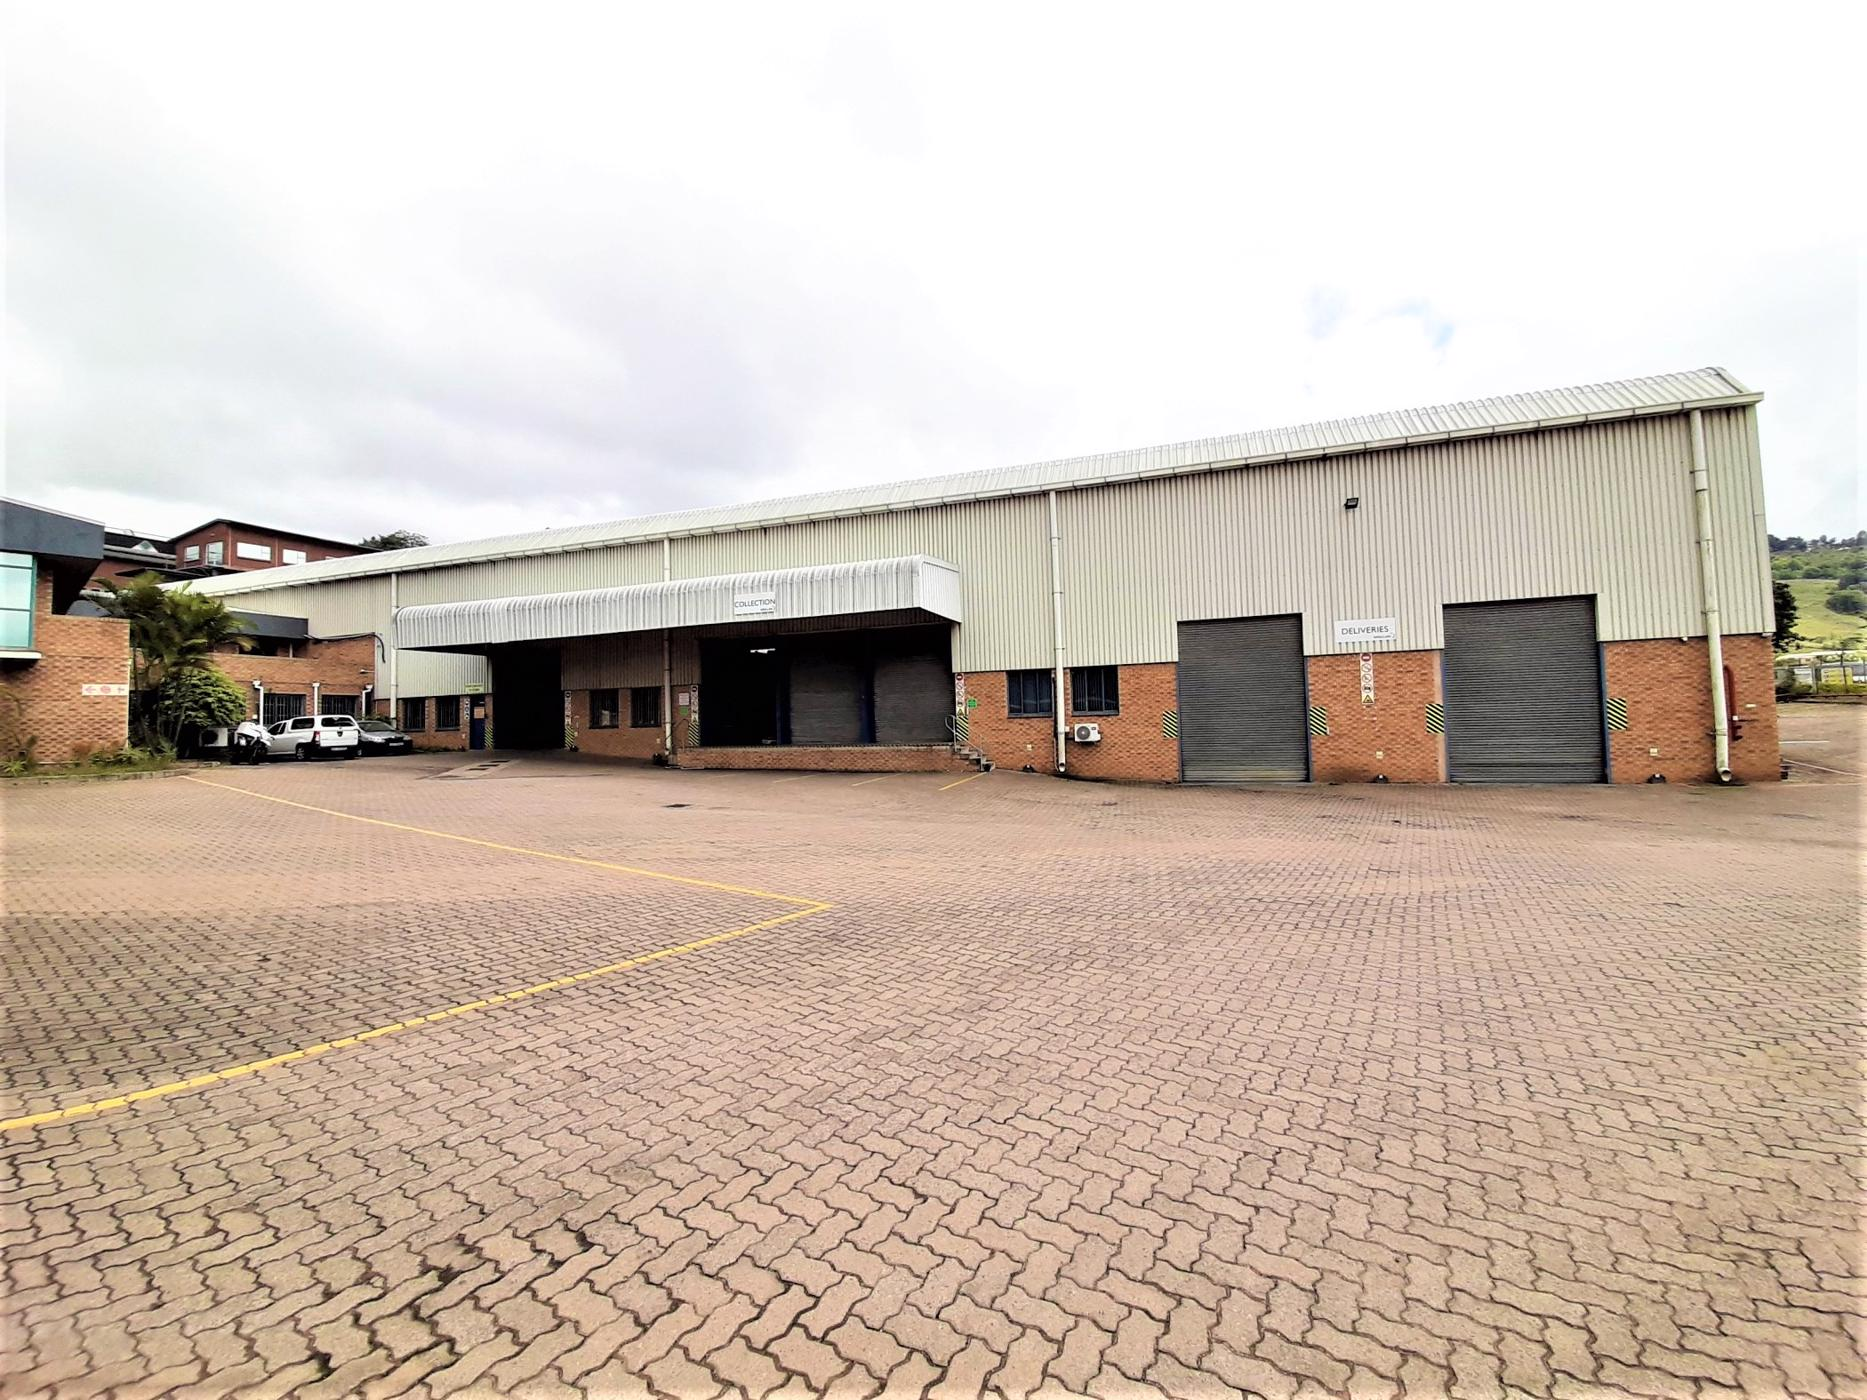 4211 m² commercial industrial property to rent in Westmead